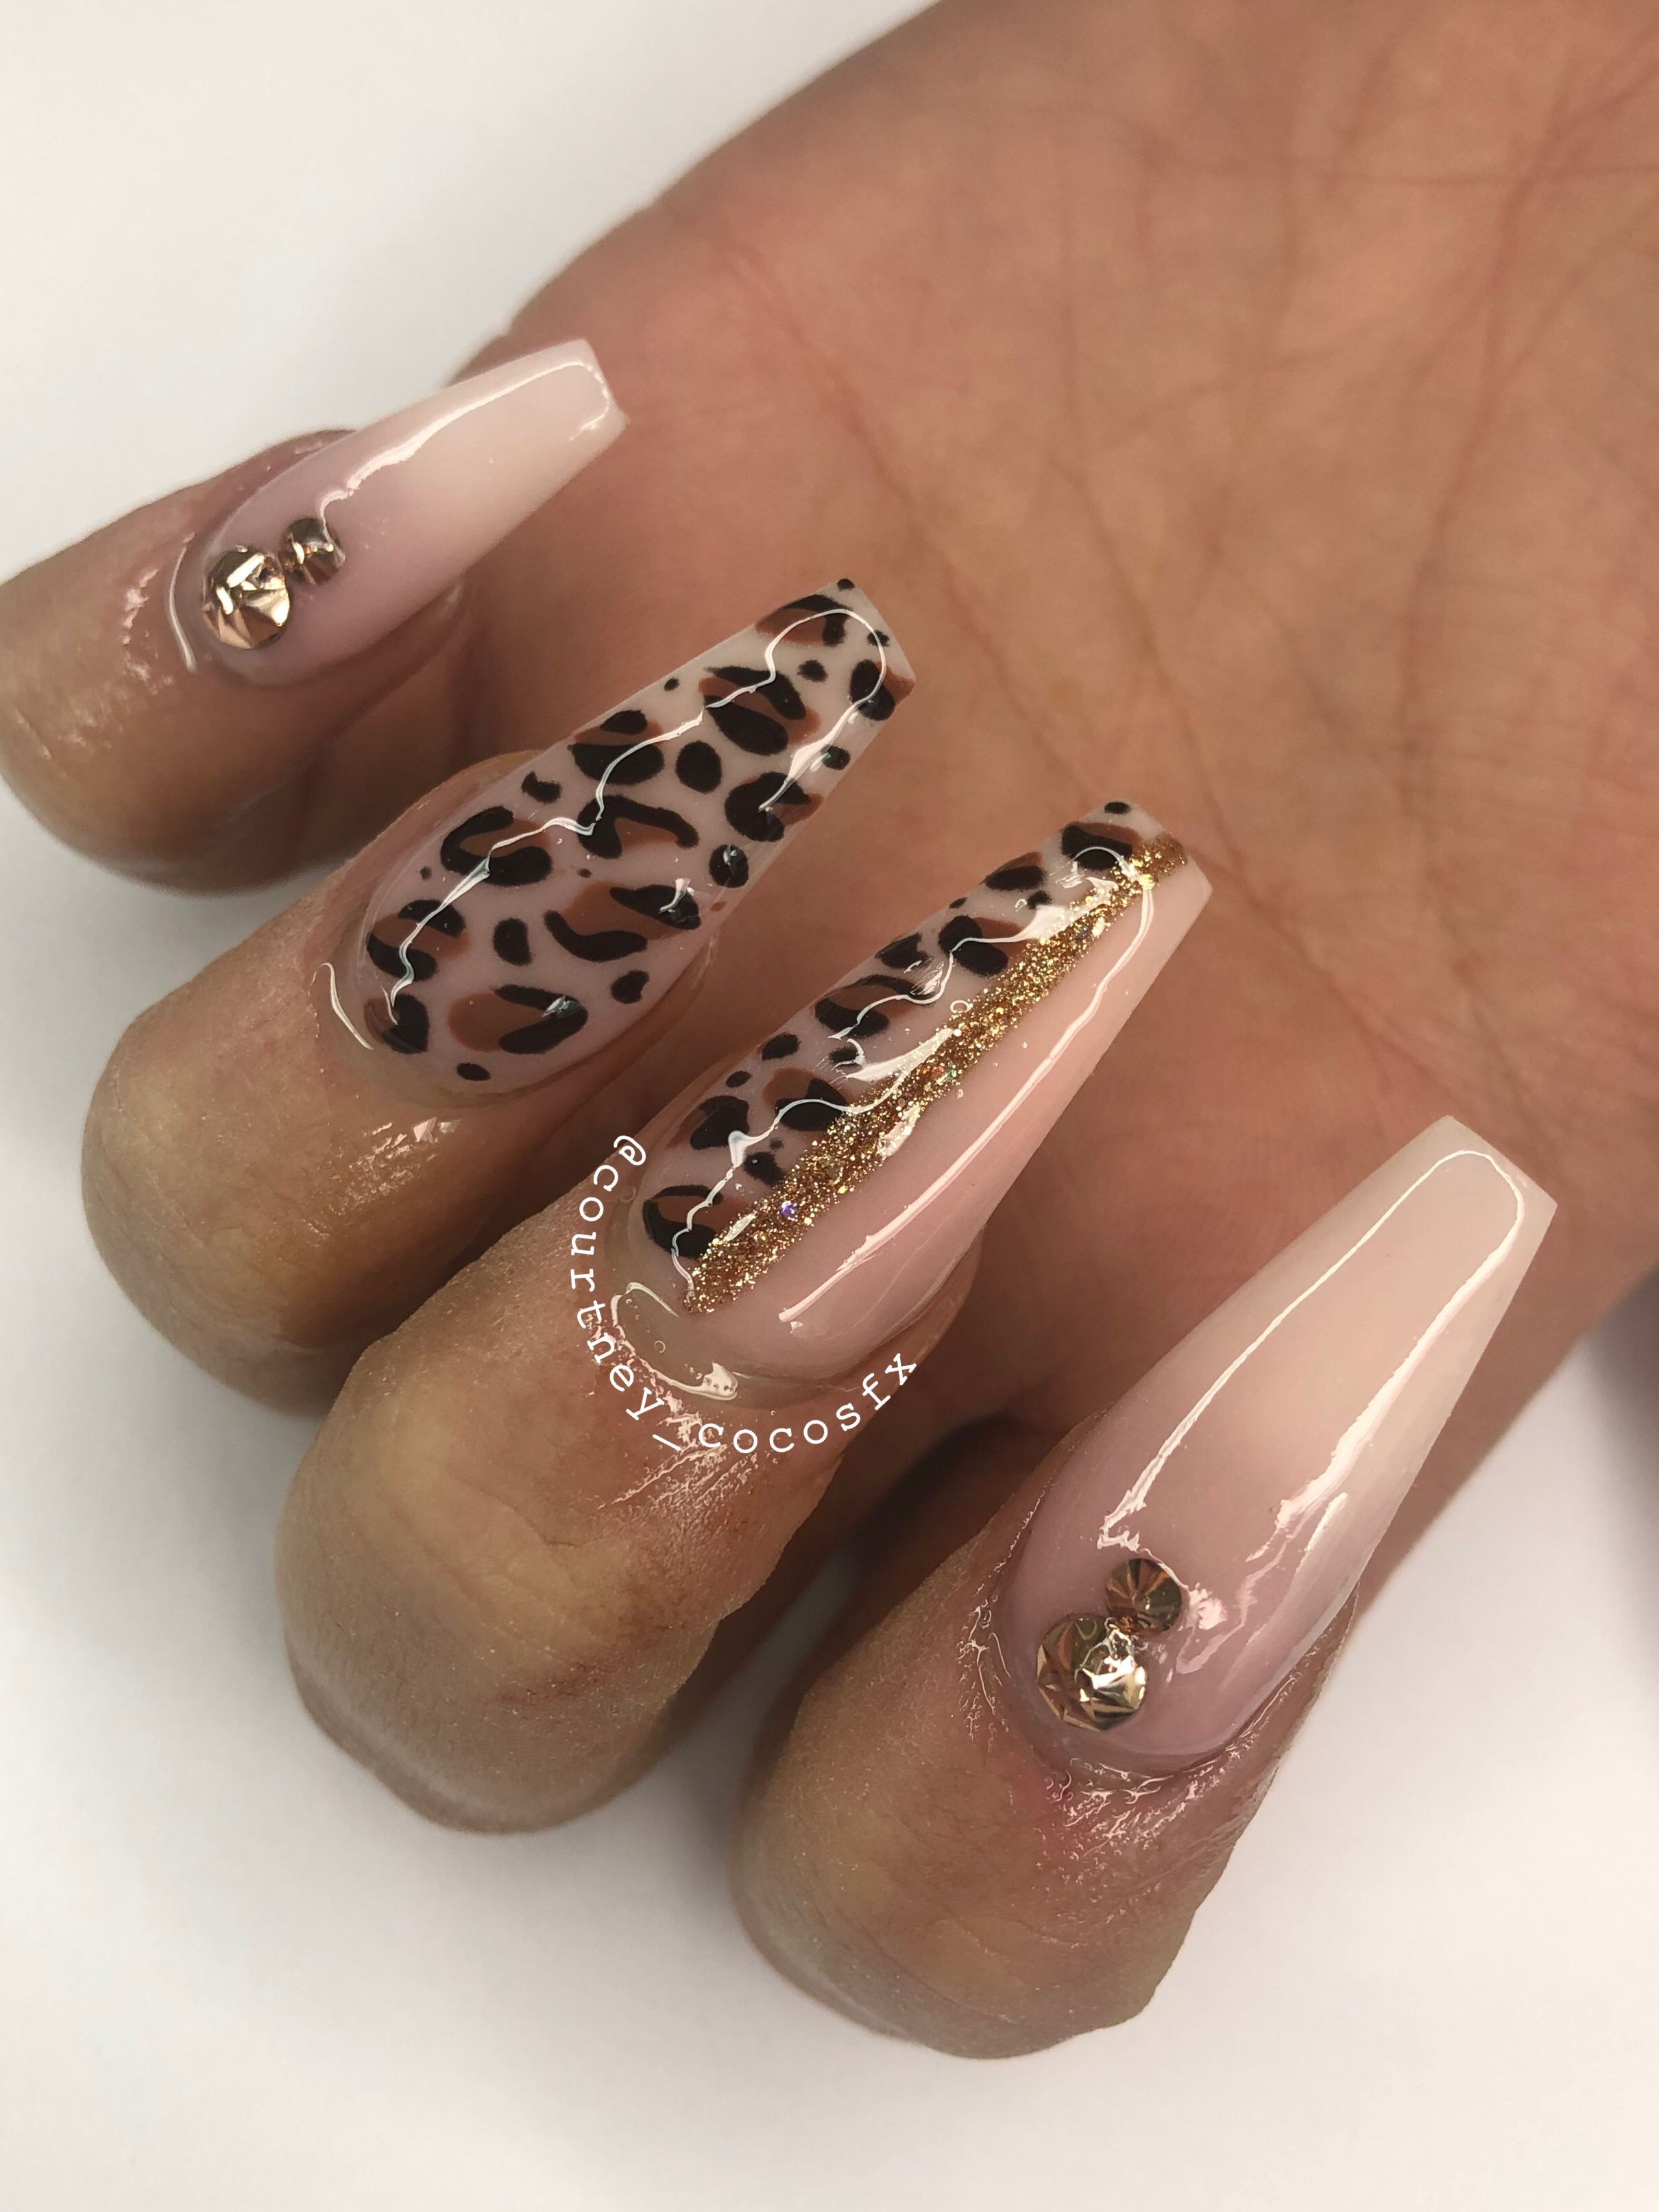 French Ombre With Leopard Print Nail Art Leopard Print Nails Pink Leopard Nails Leopard Nail Designs